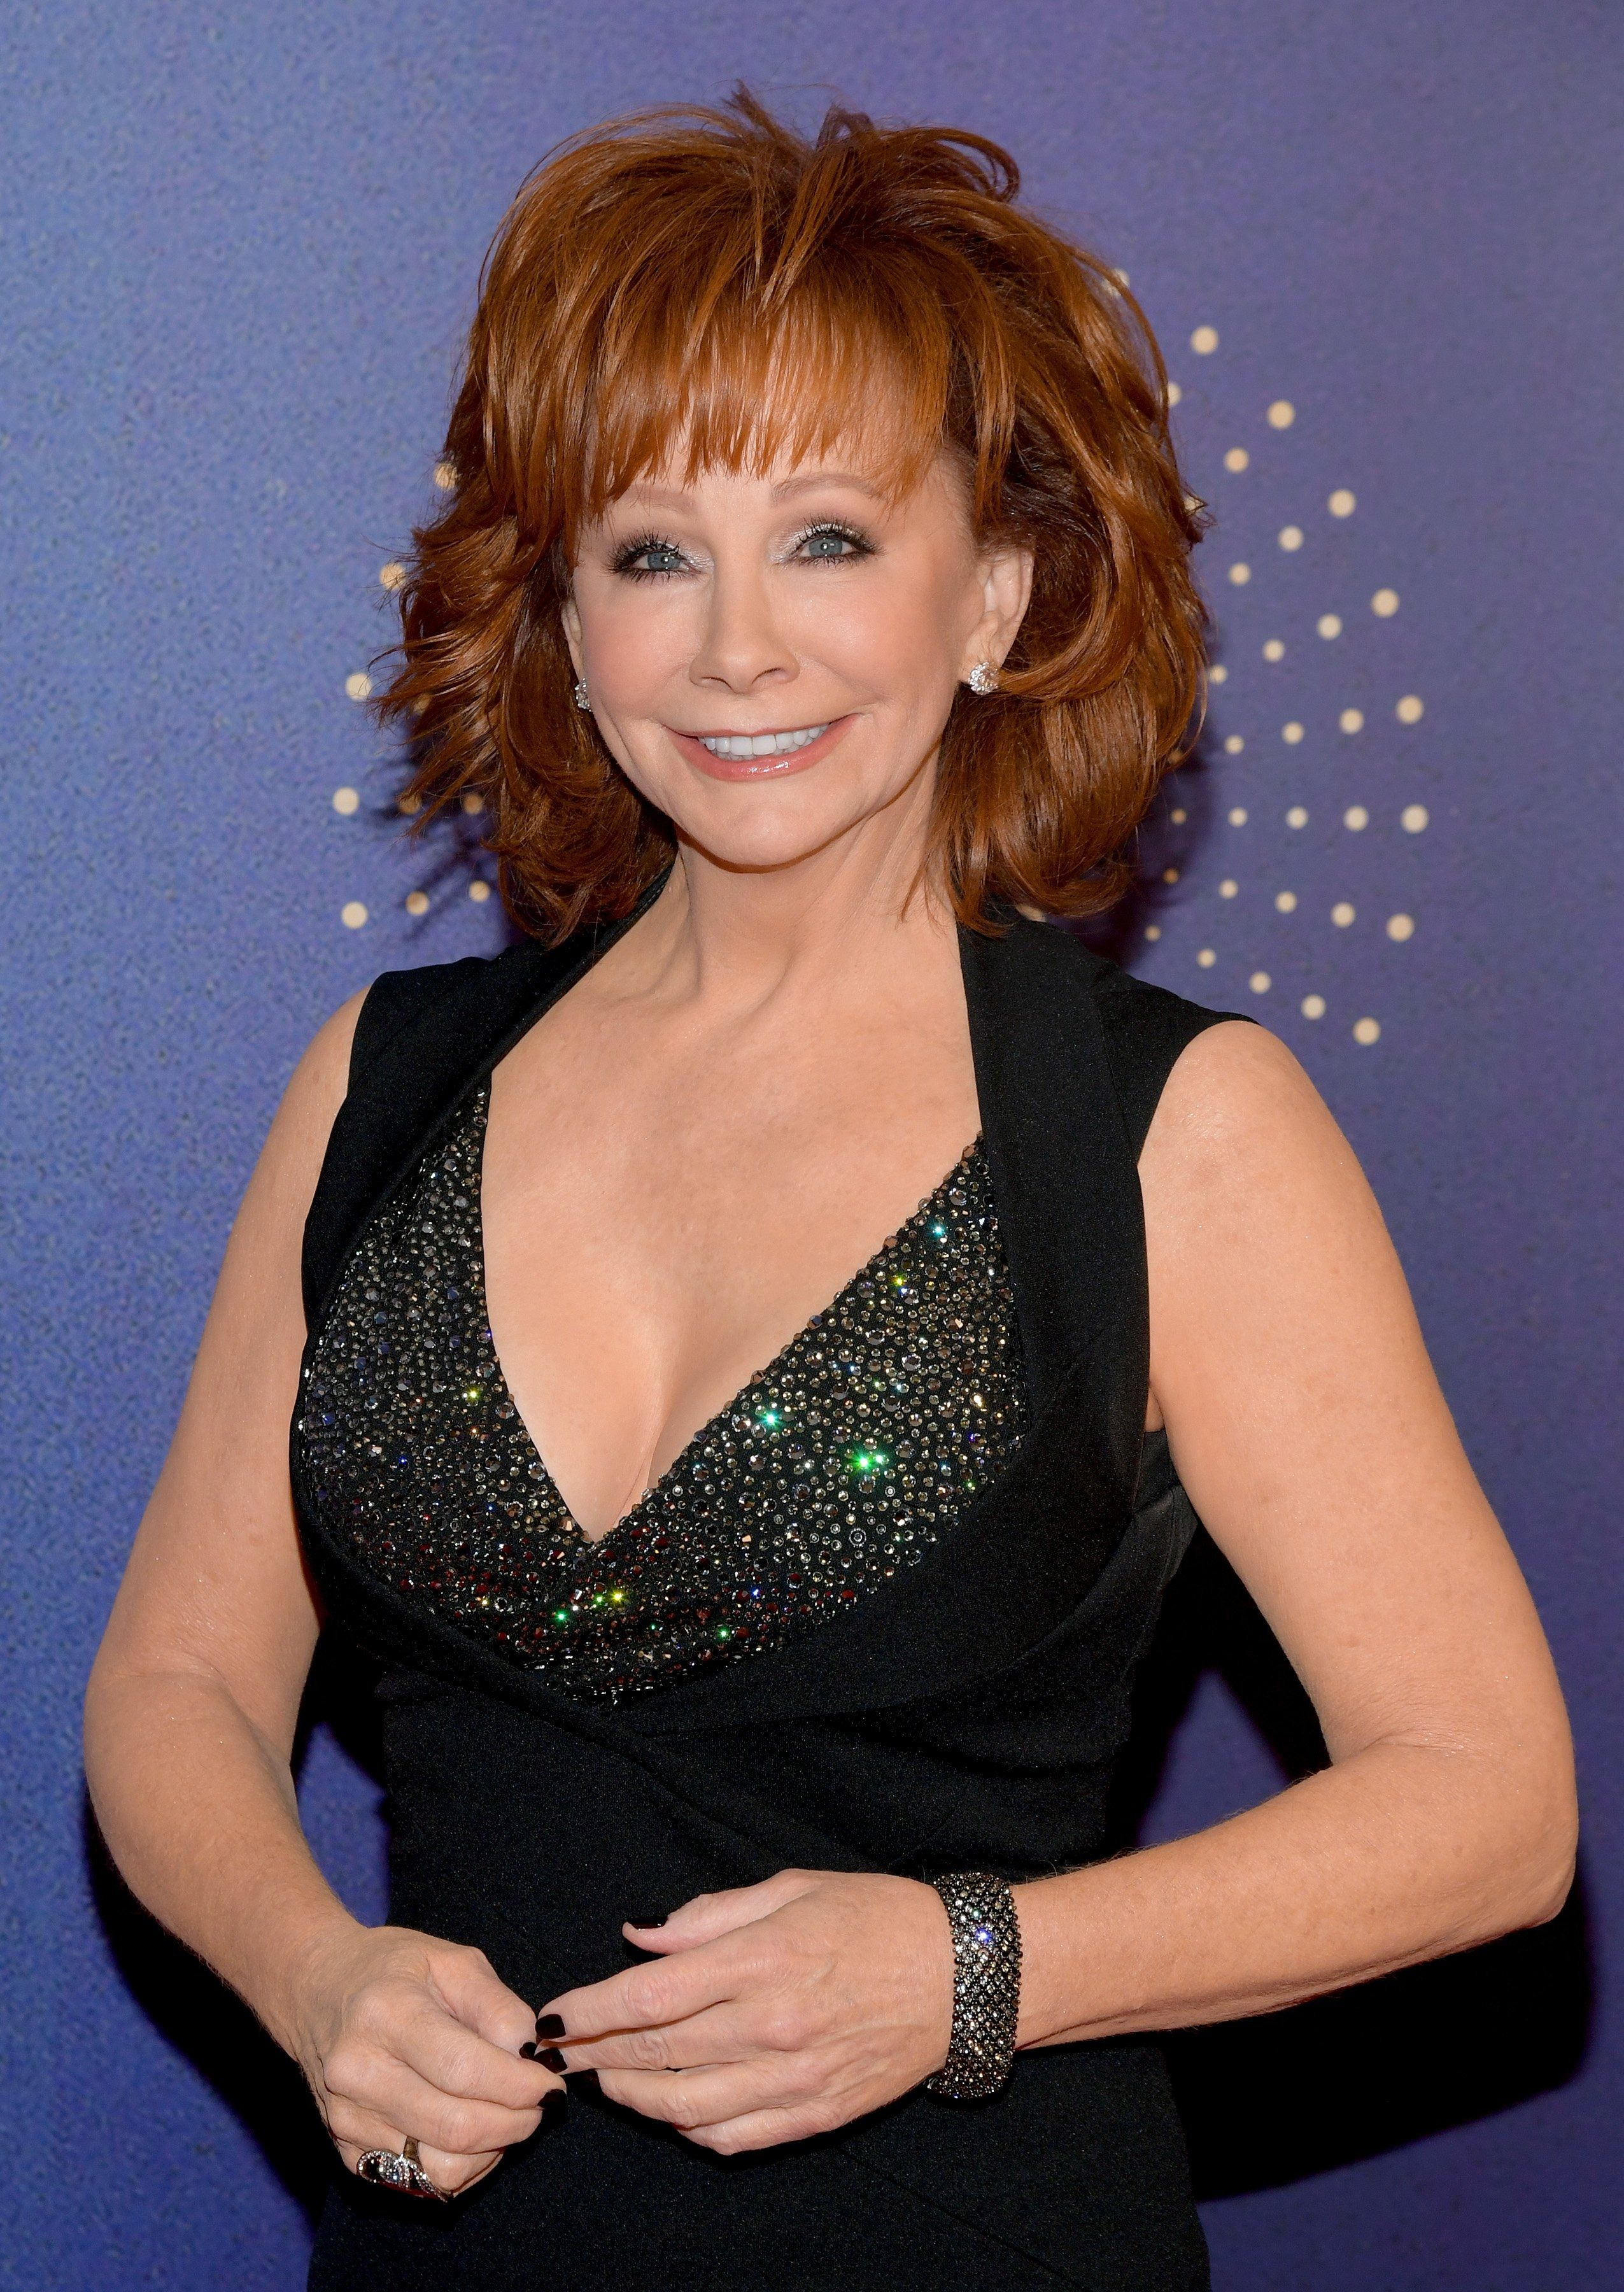 Pin by LindaSteed on Reba (With images) Country female